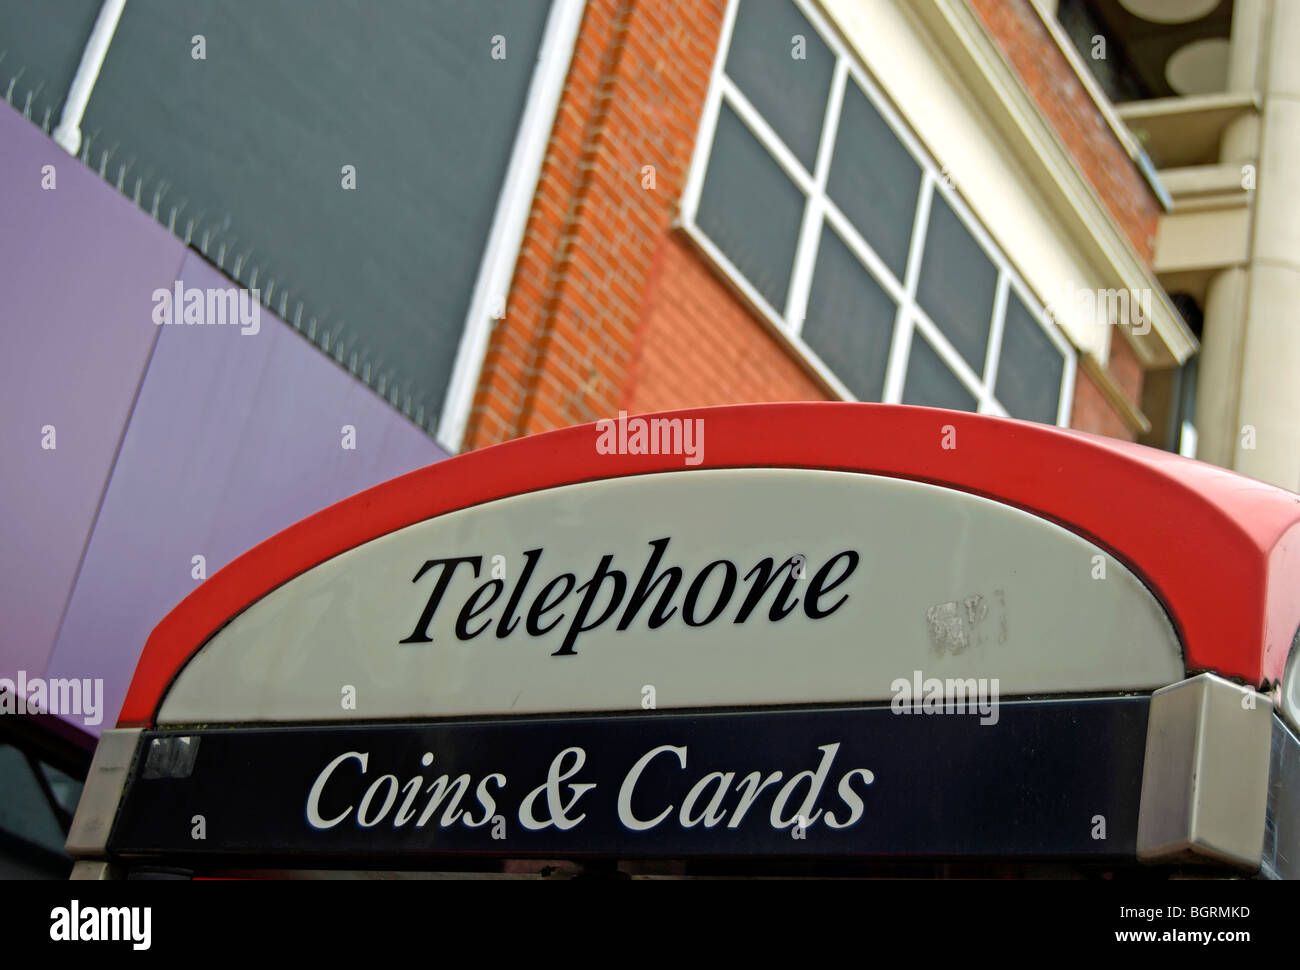 detail of british public telephone box accepting coins and cards - Stock Image